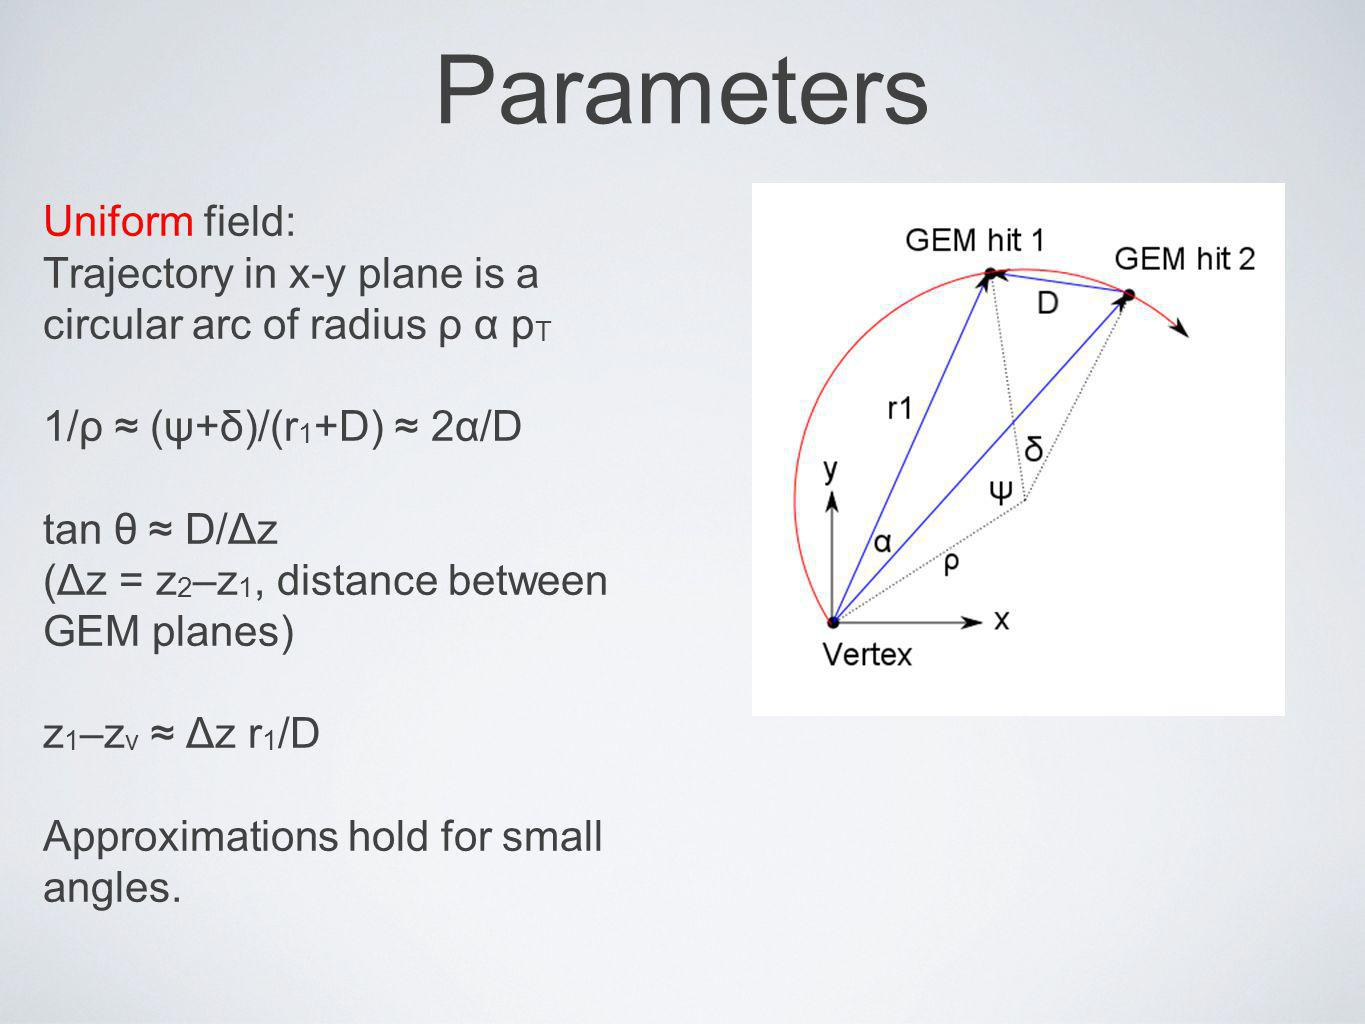 Parameters Uniform field: Trajectory in x-y plane is a circular arc of radius ρ α p T 1/ρ (ψ+δ)/(r 1 +D) 2α/D tan θ D/Δz (Δz = z 2 –z 1, distance between GEM planes) z 1 –z v Δz r 1 /D Approximations hold for small angles.